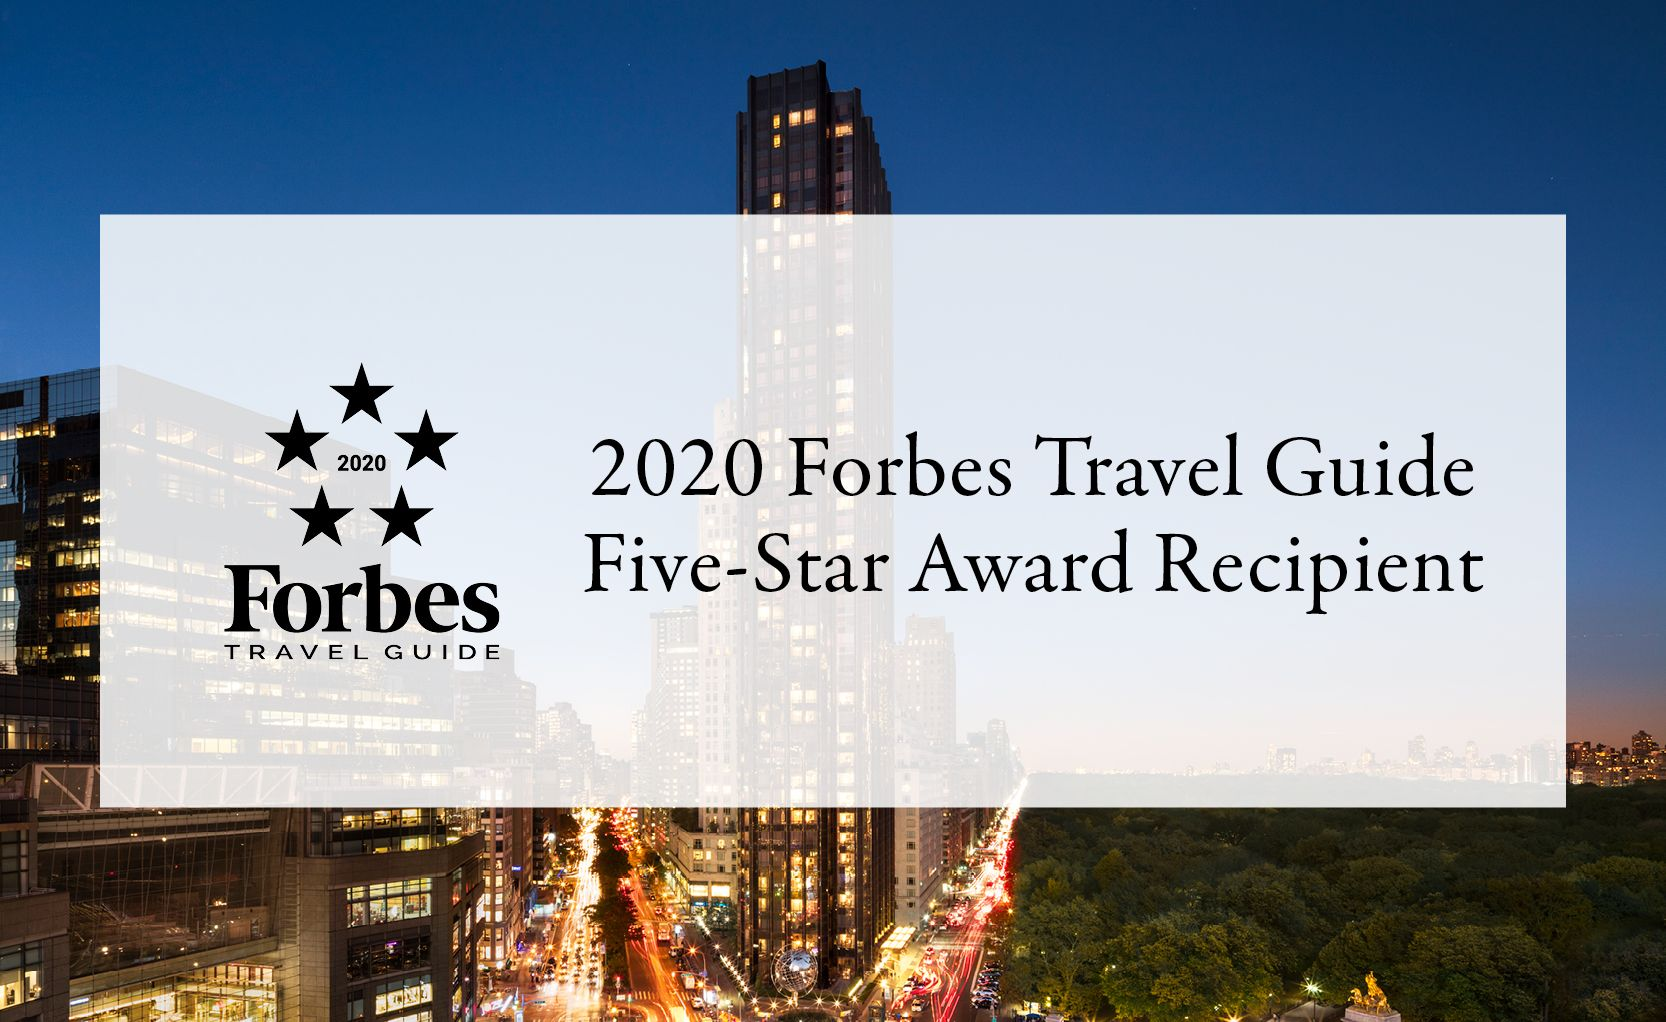 2020 Forbes Travel Guide 5-Star Award Recipient